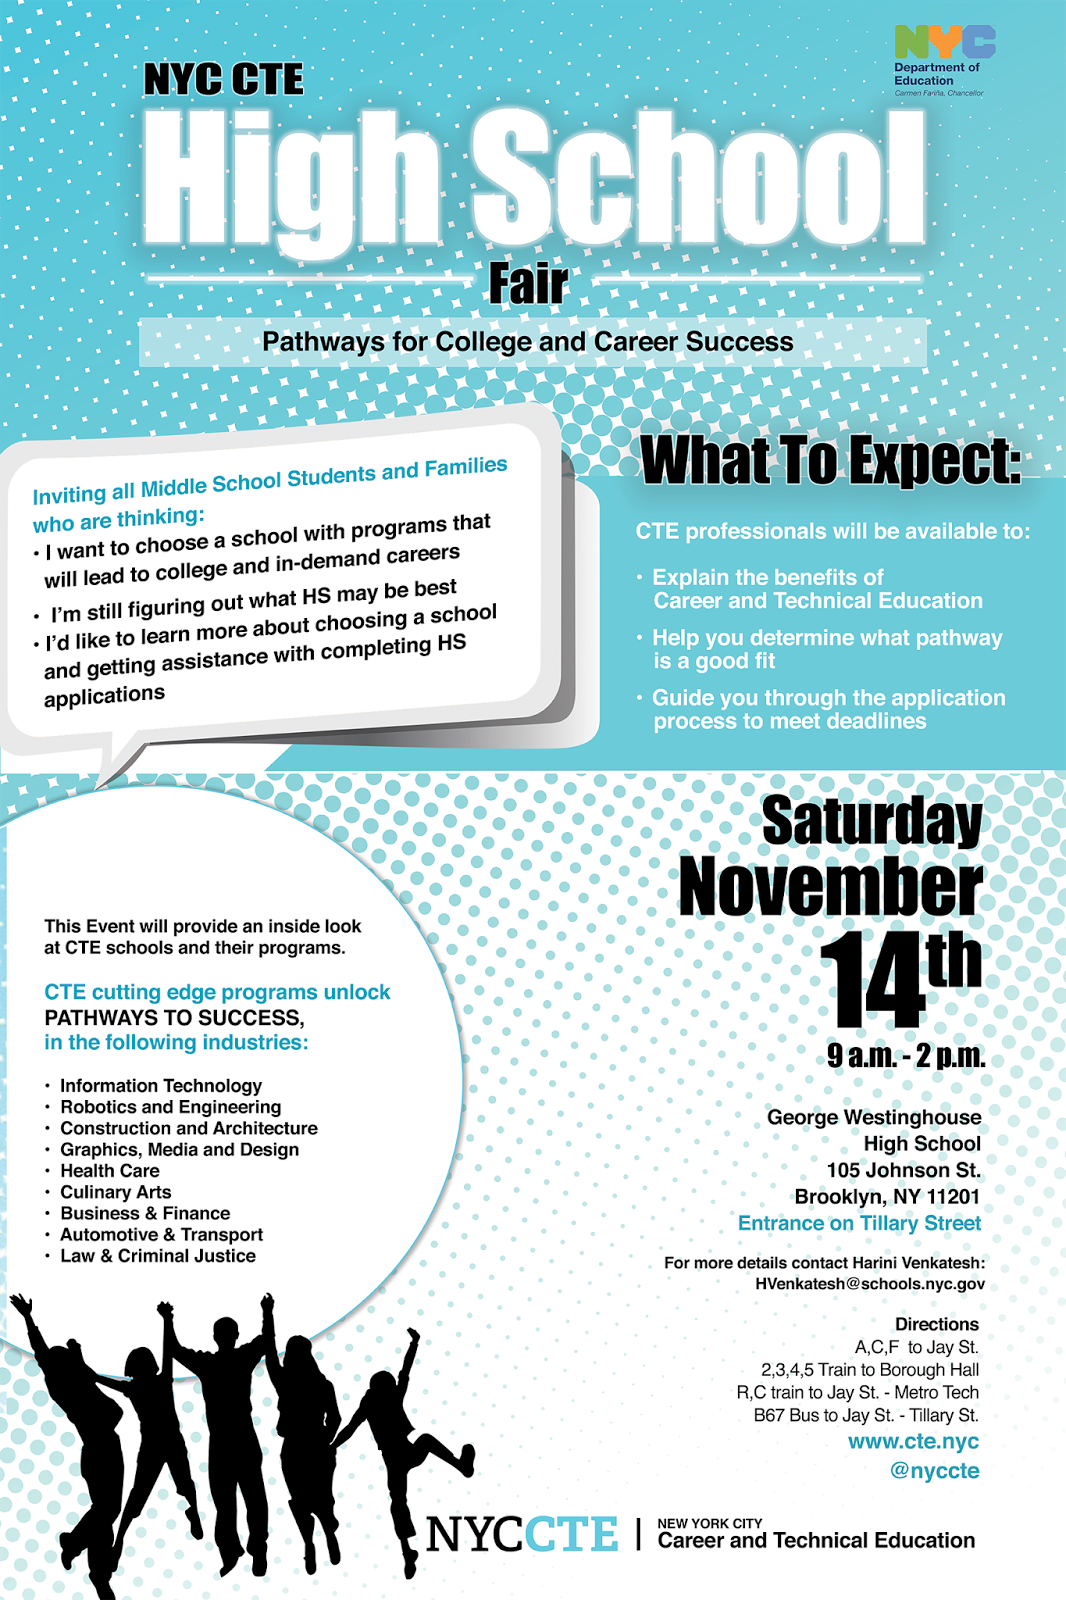 Parents Of Ny Teens Cte High School Fair Nov 14 For -2726